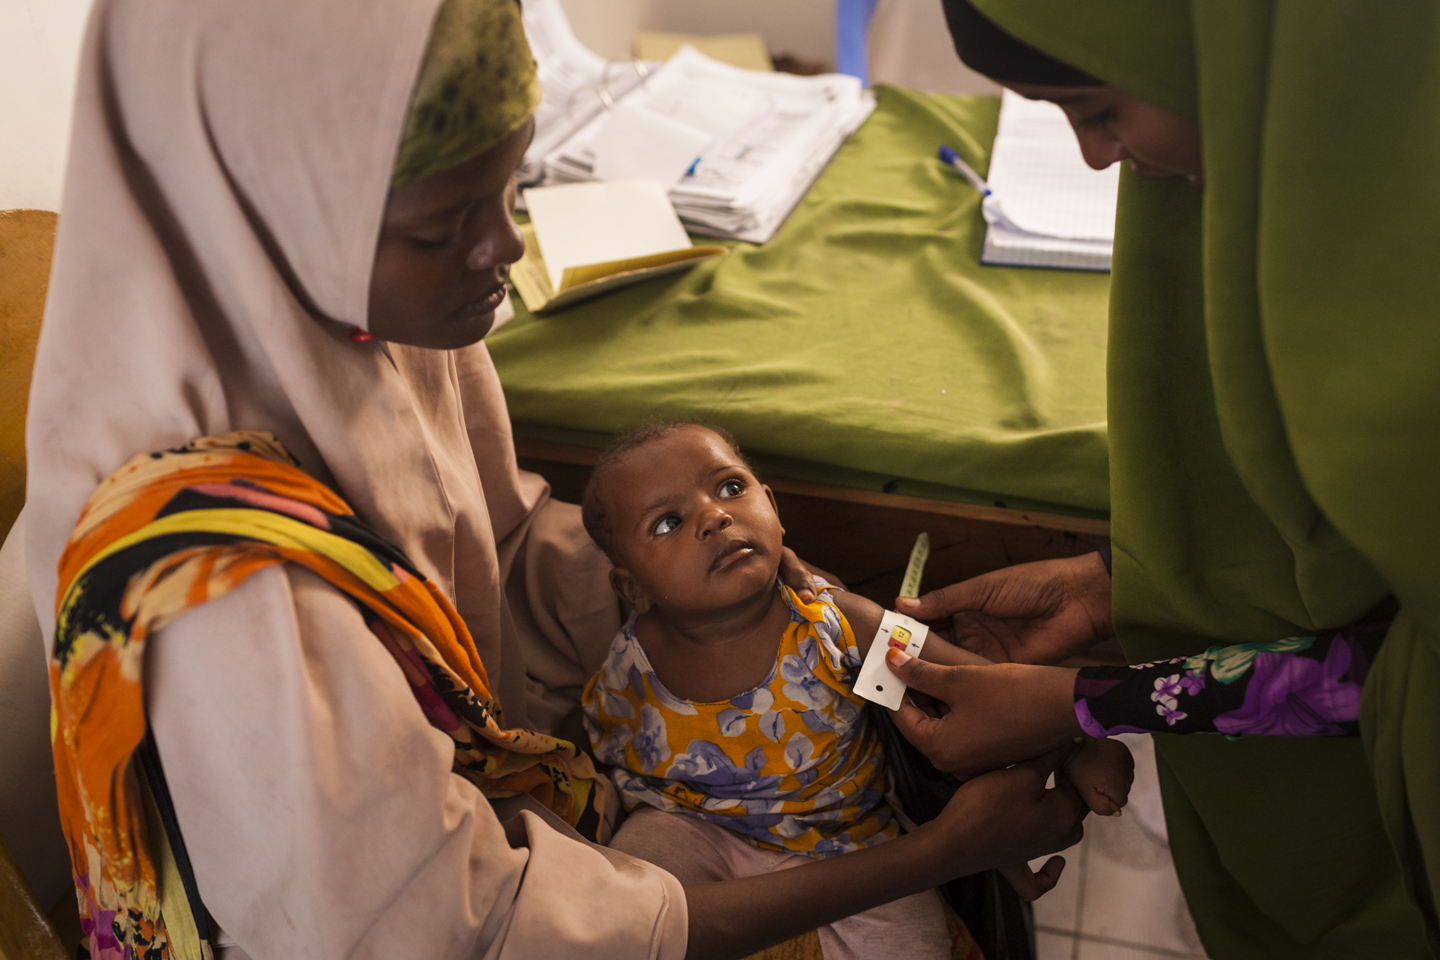 Shukri, 8 months, has her weight monitored as part of the nutrition program at the Wardhigley Maternal and Child Health Center in Mogadishu, Somalia, December 3, 2014.